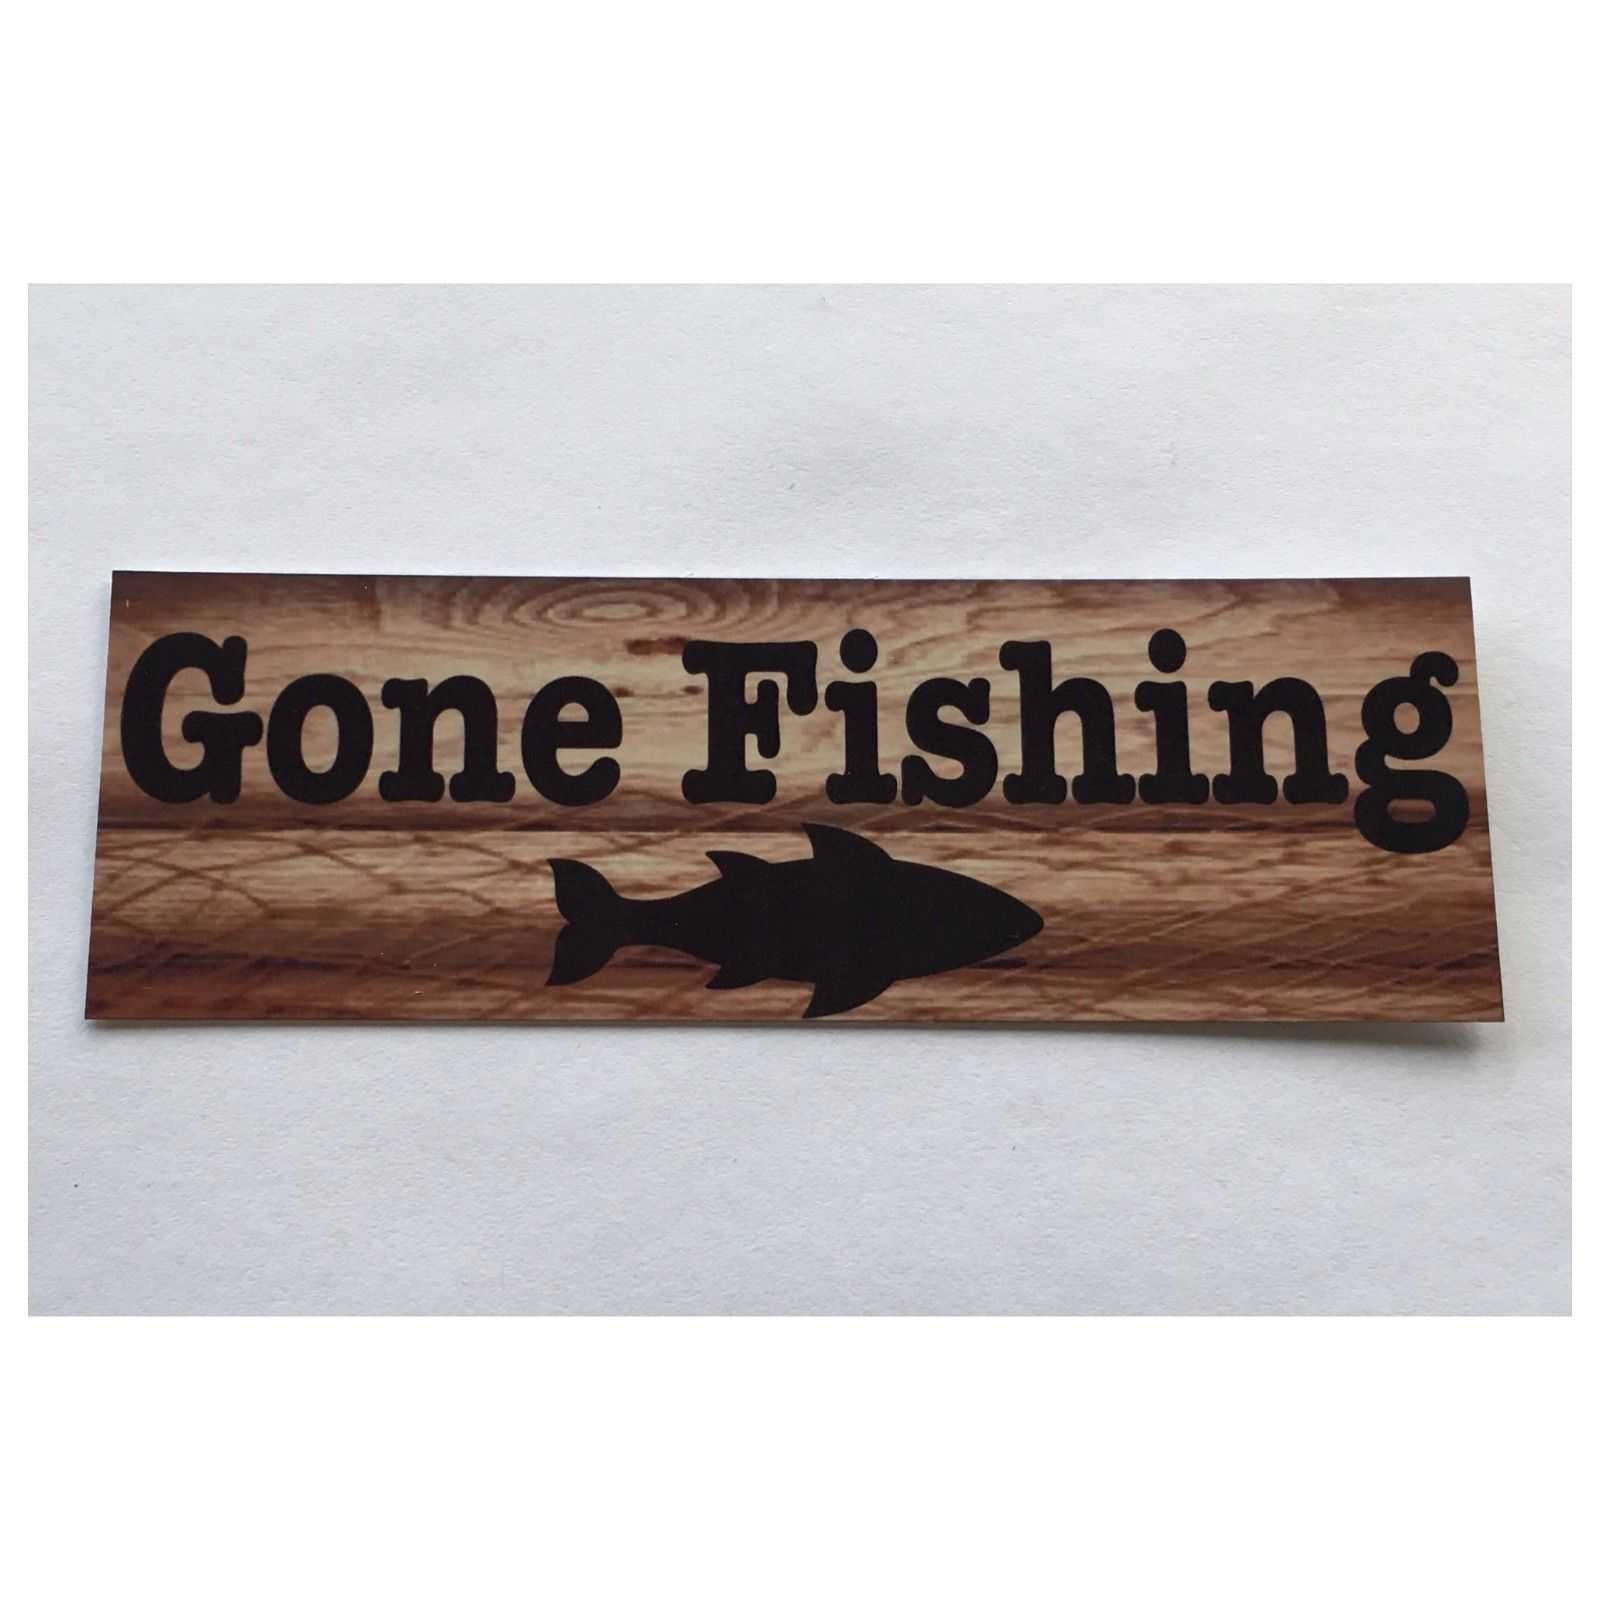 Gone Fishing with Fish Sign Hanging Or Plaque Plaques & Signs The Renmy Store